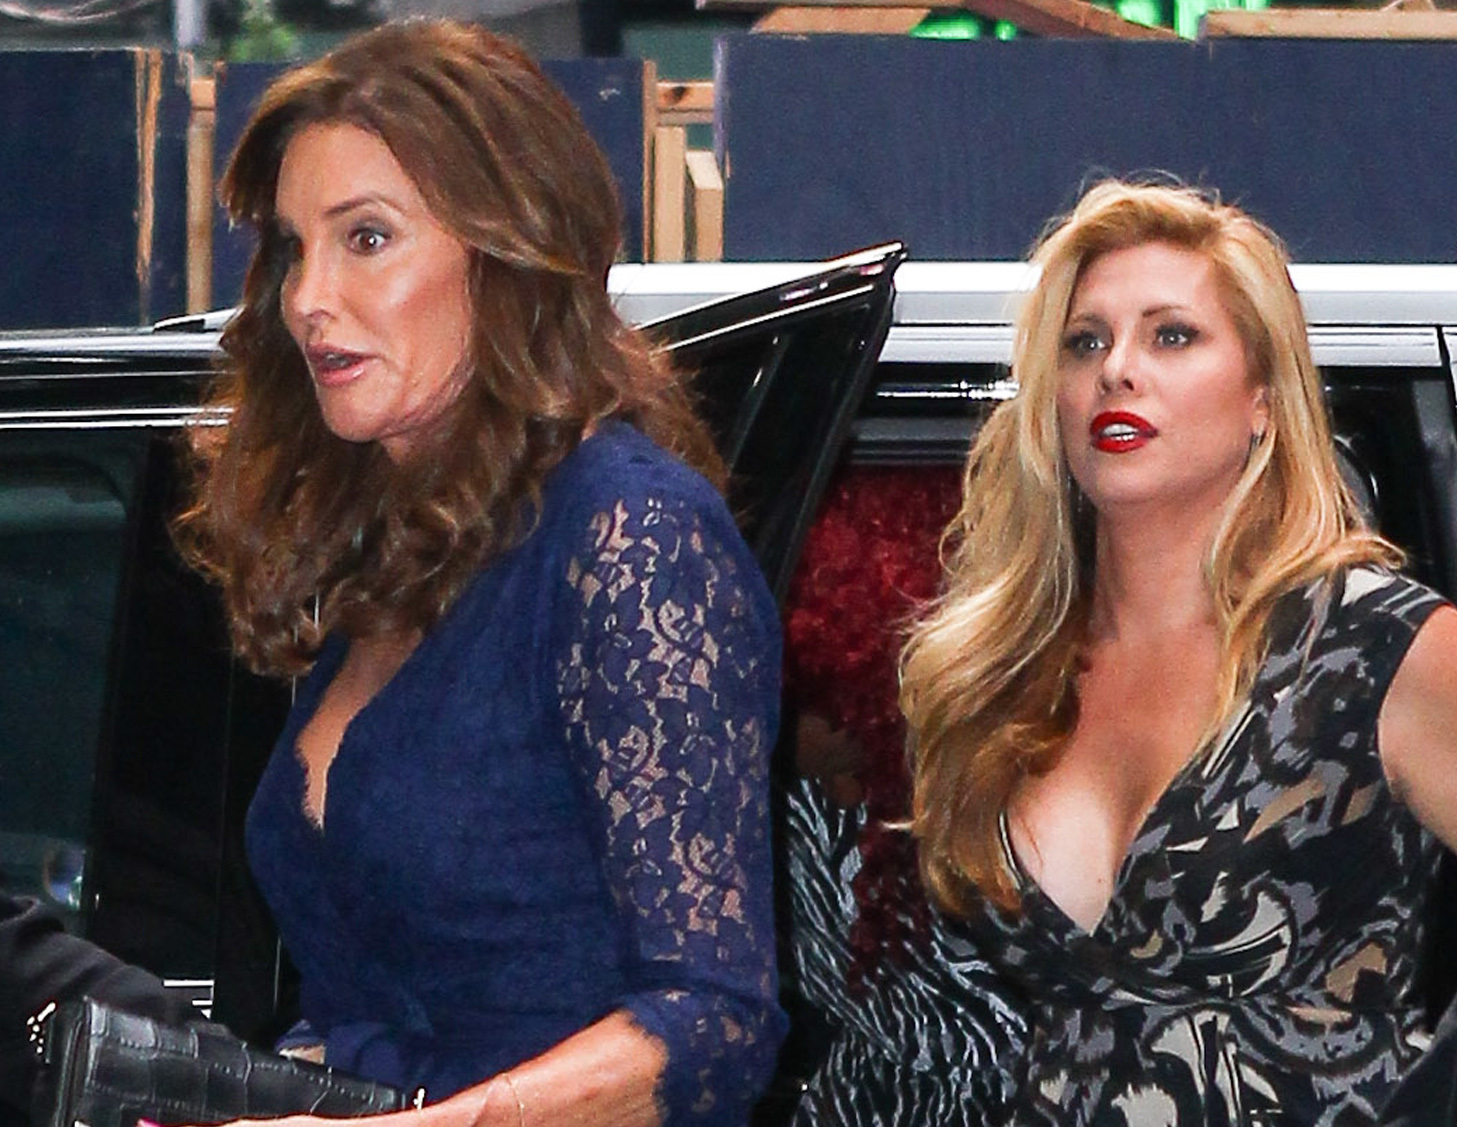 Caitlyn Jenner enjoys a night on Broadway with trans gal pal Candis Cayne